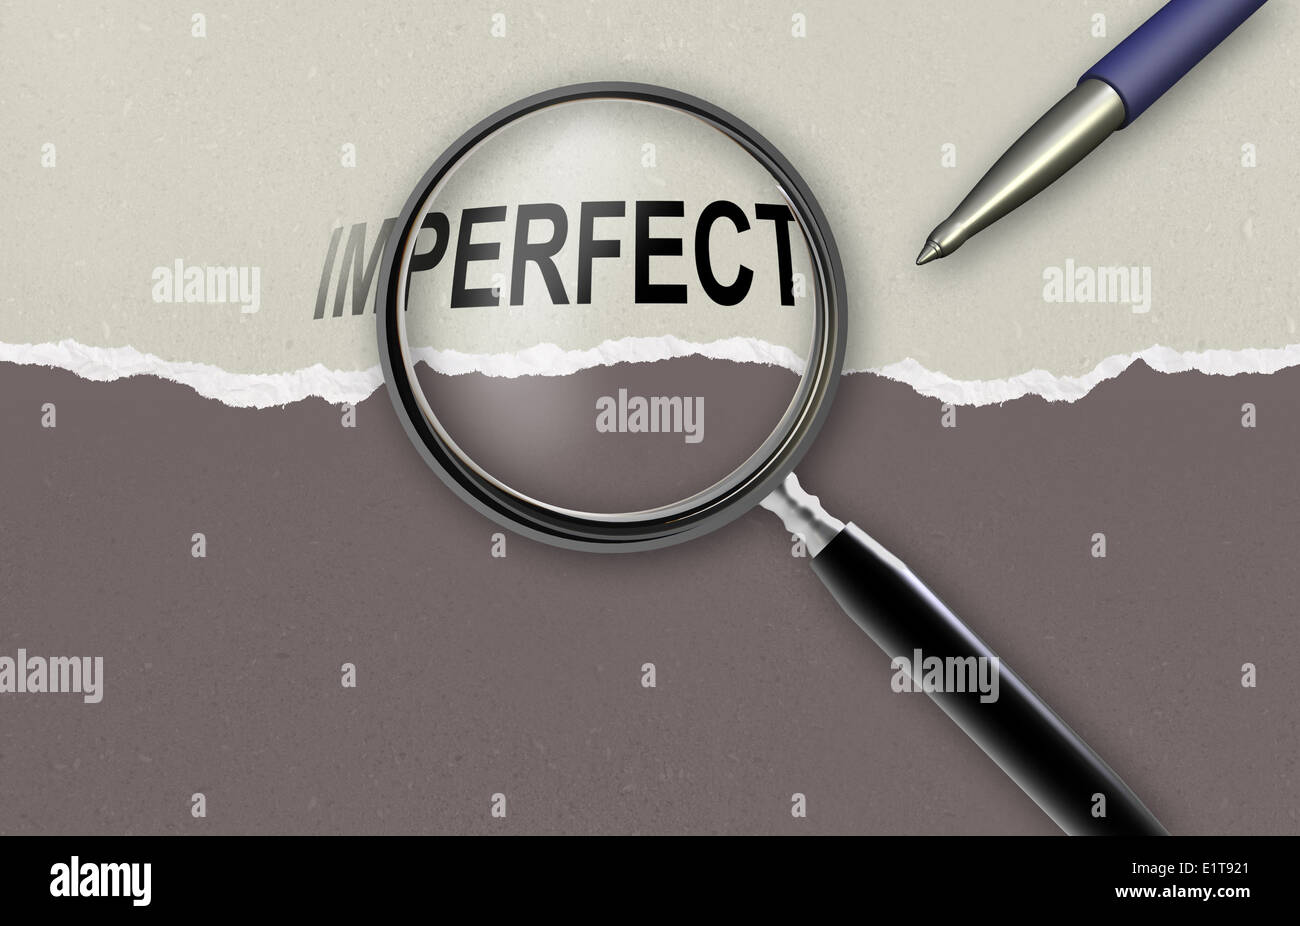 changing the word imperfect for perfect and magnifying glass made in 2d software - Stock Image